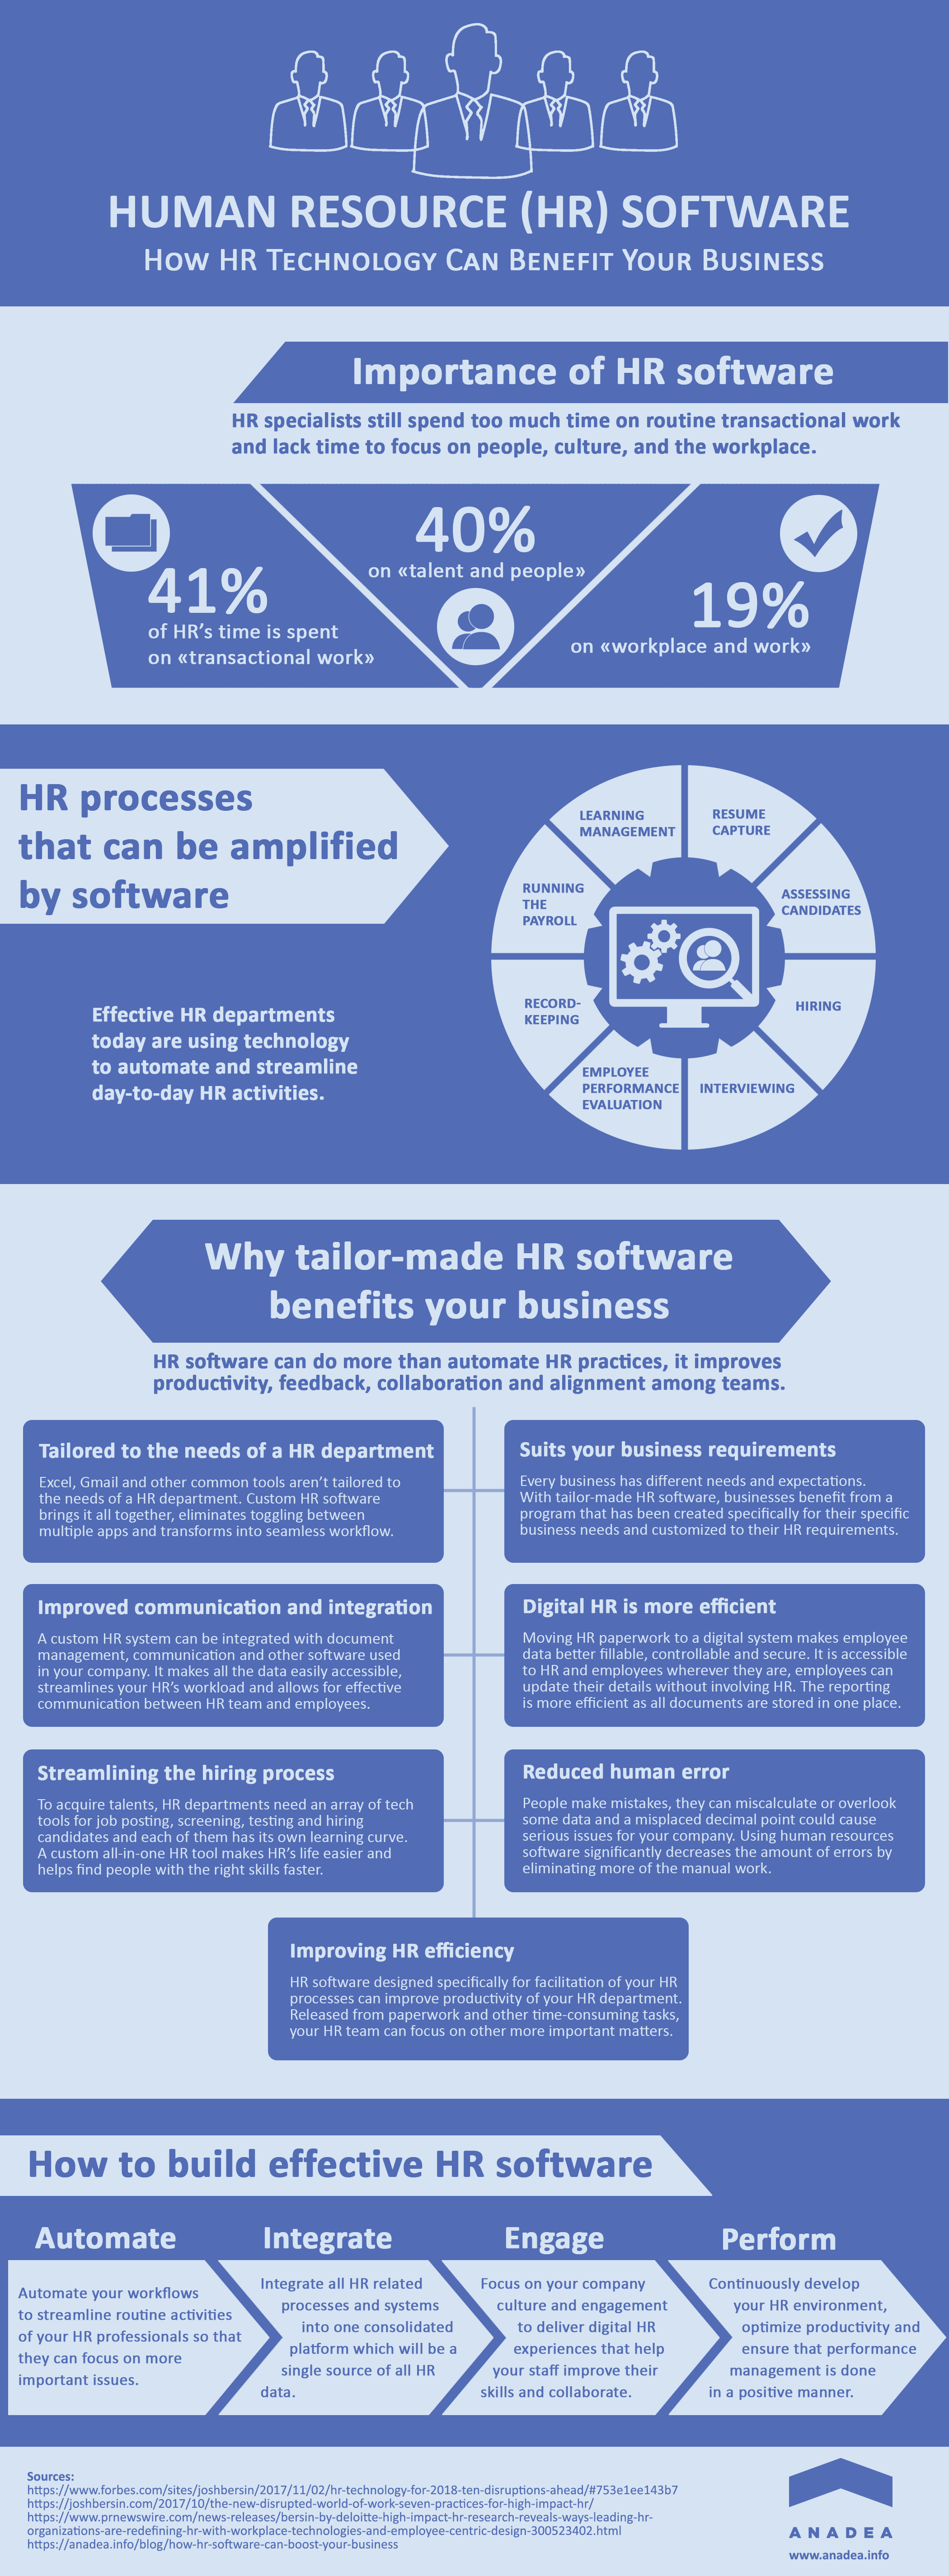 Infographic: Benefits of HR Software